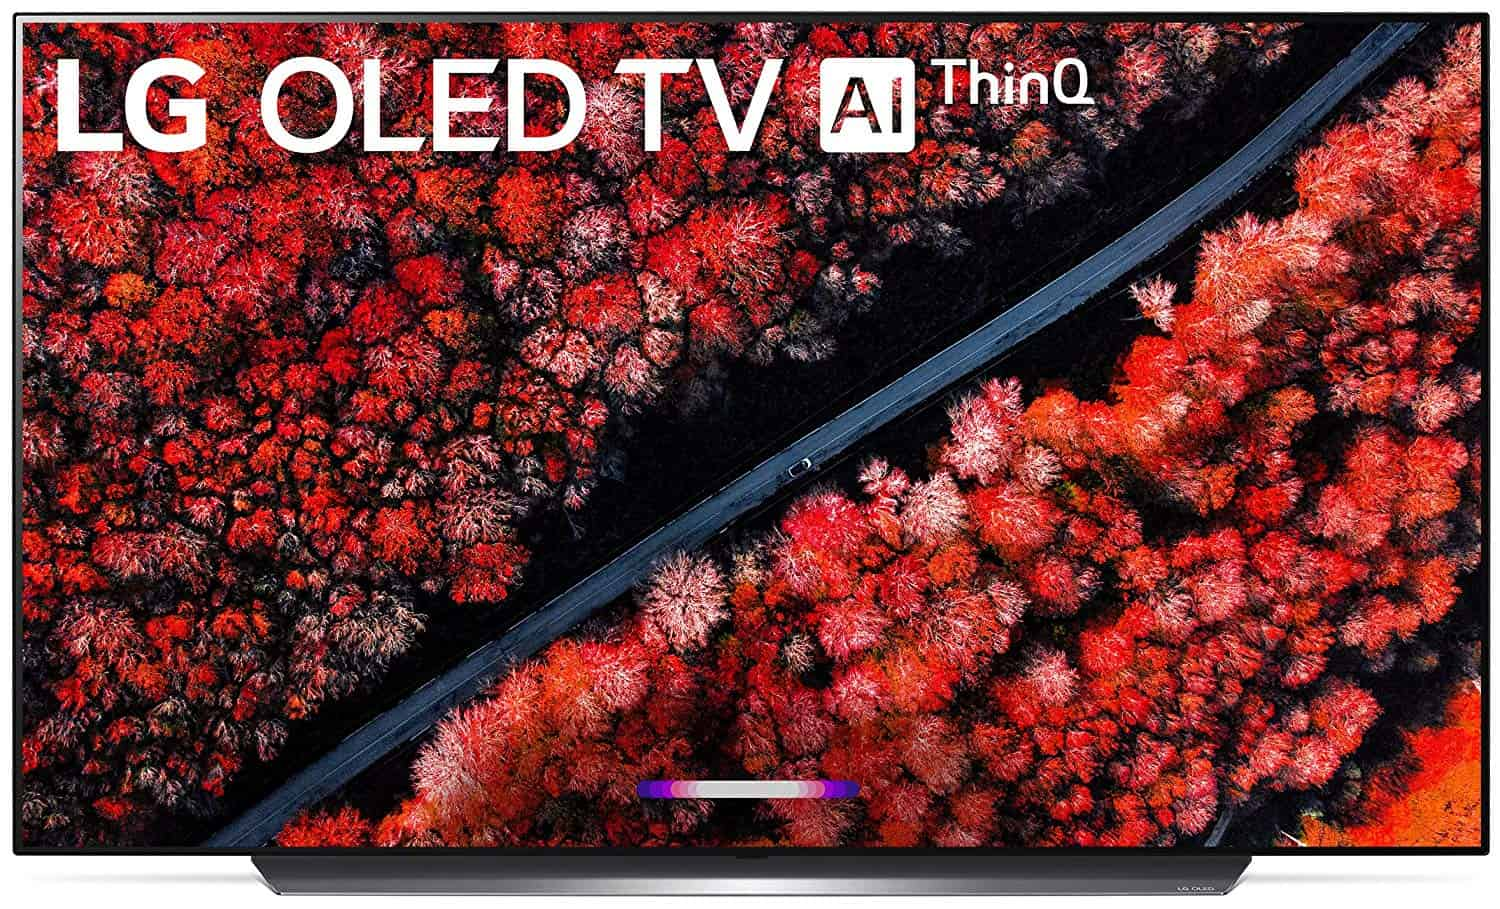 Save on TVs and Audio this Labor Day - Amazon